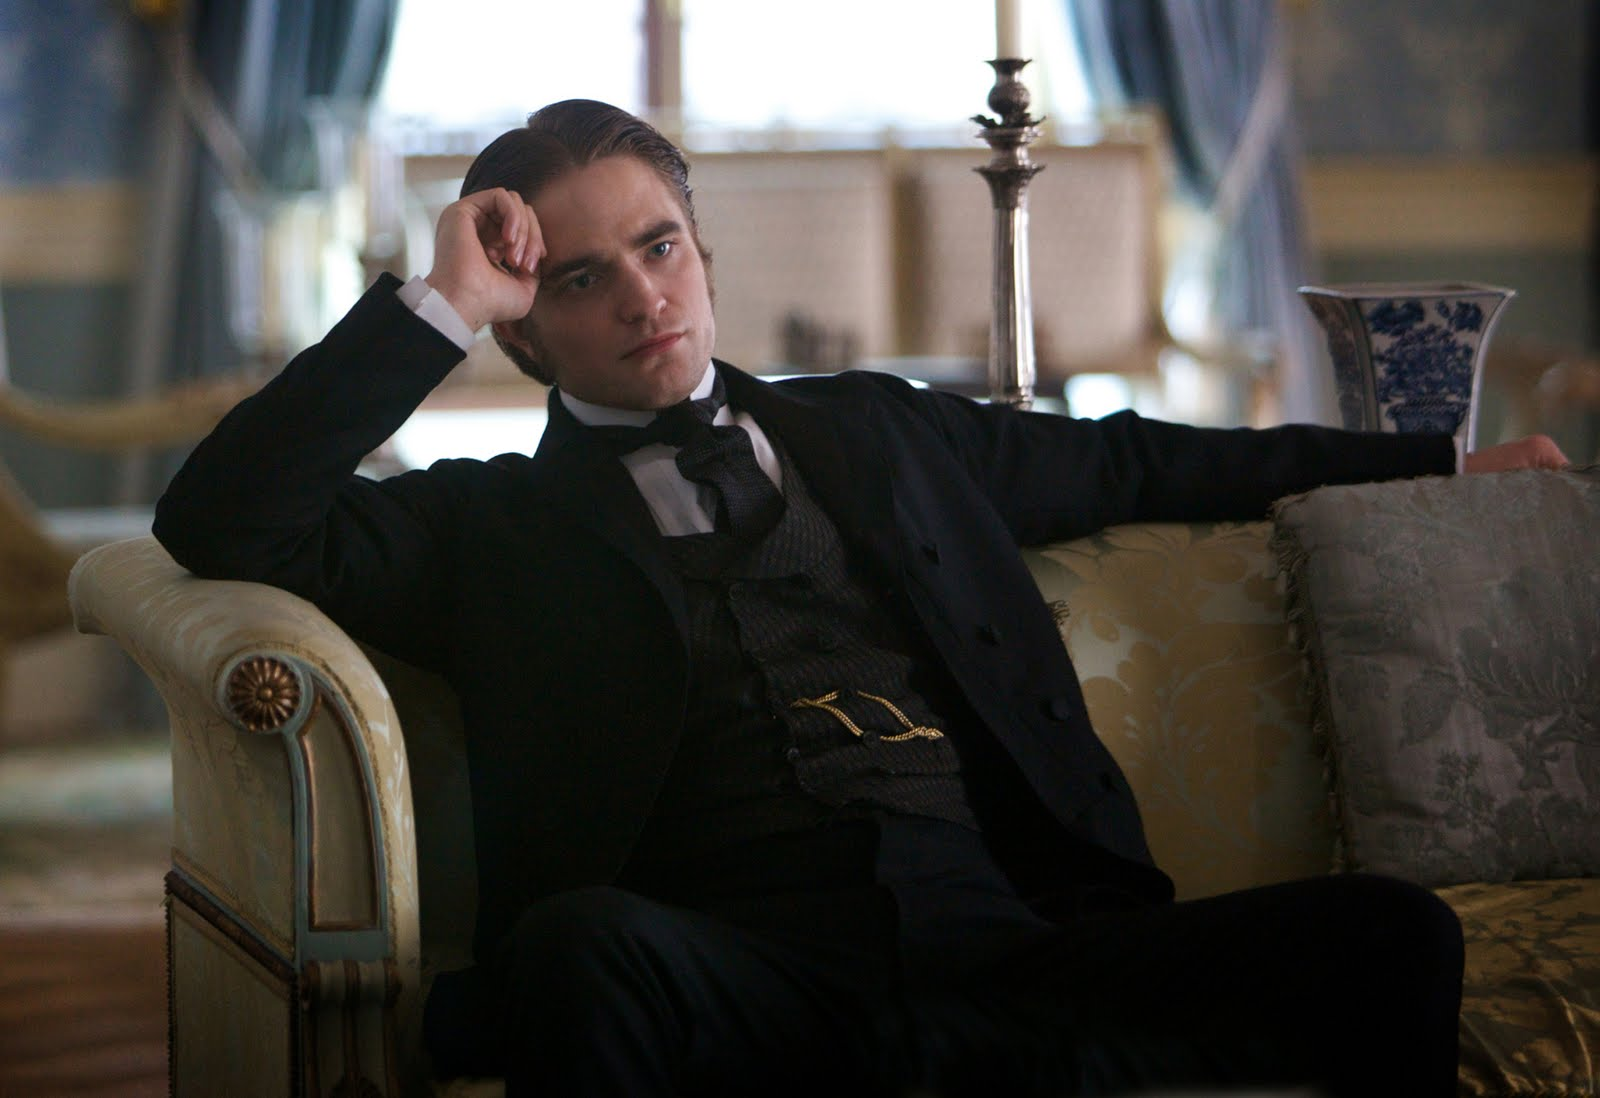 Bel Ami movie